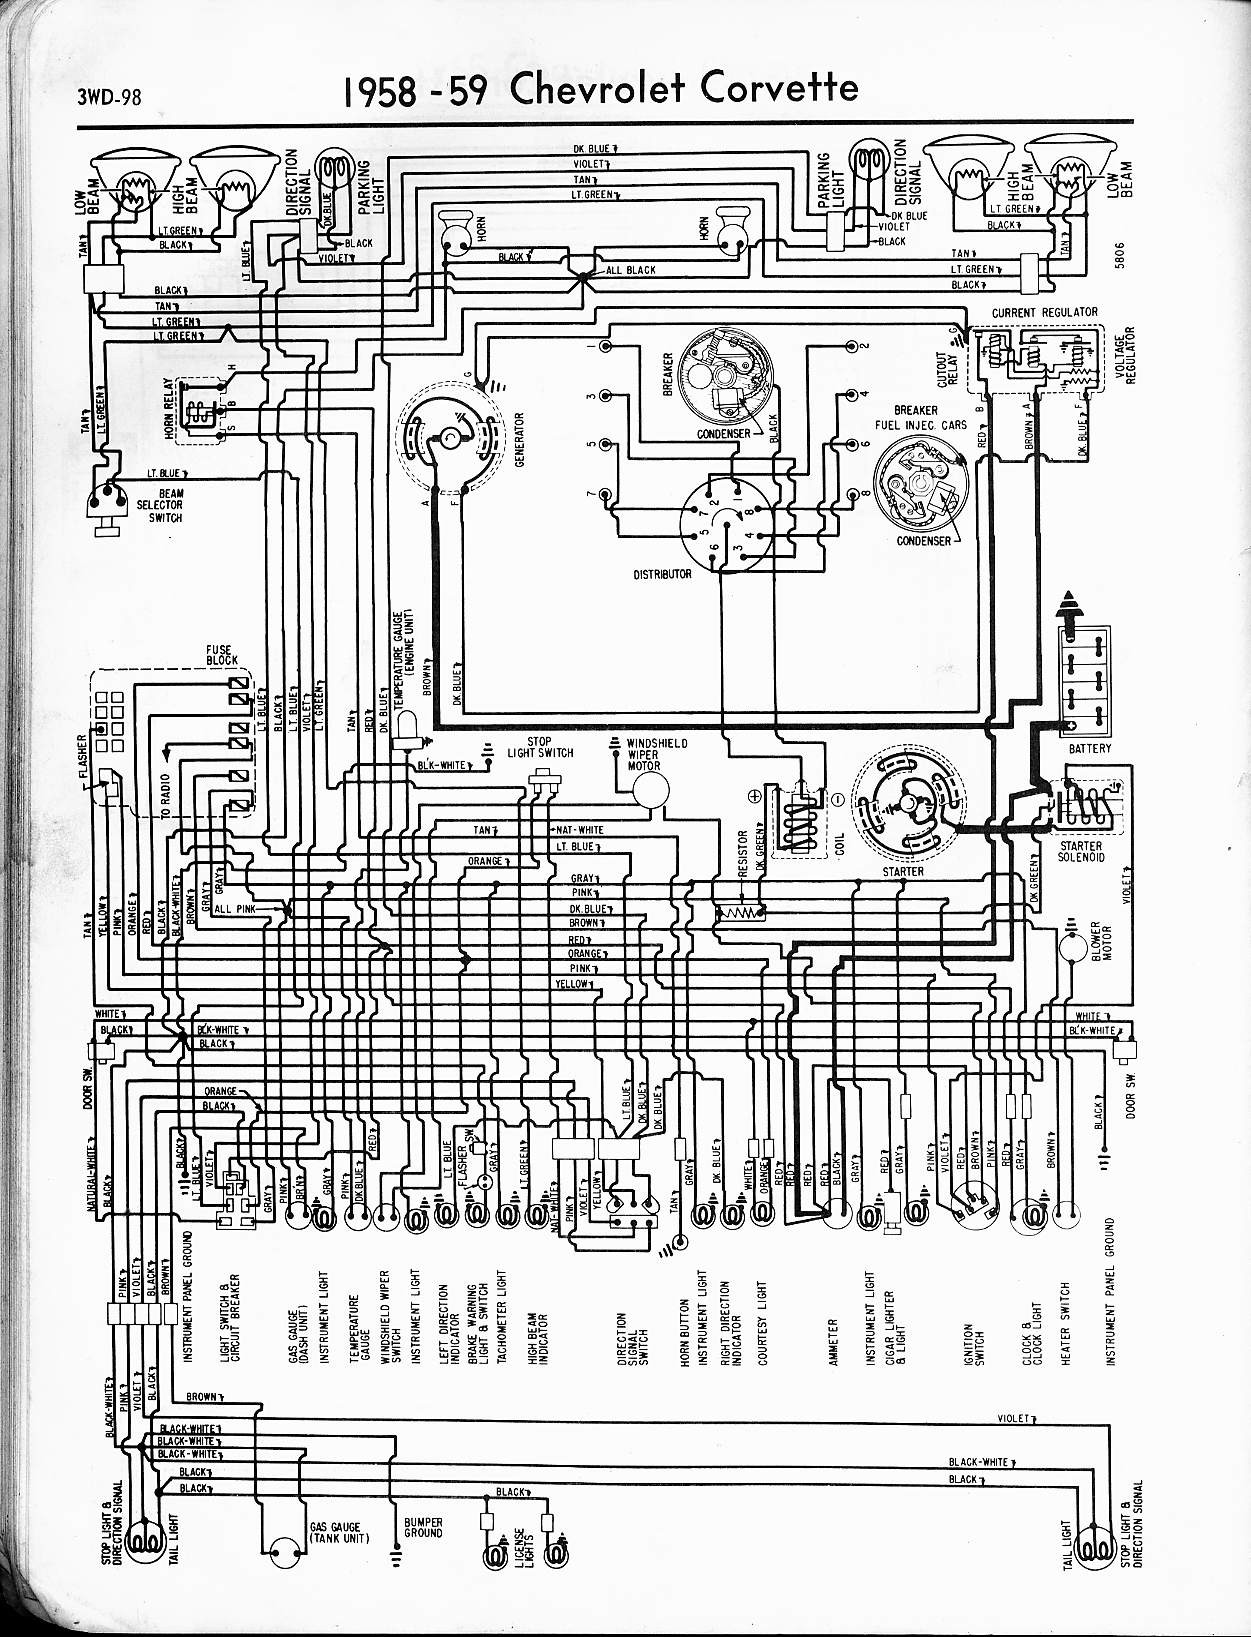 1989 Toyota Pickup Cigarette Lighter Wiring Diagram Solutions Cressida Car 57 65 Chevy Diagrams